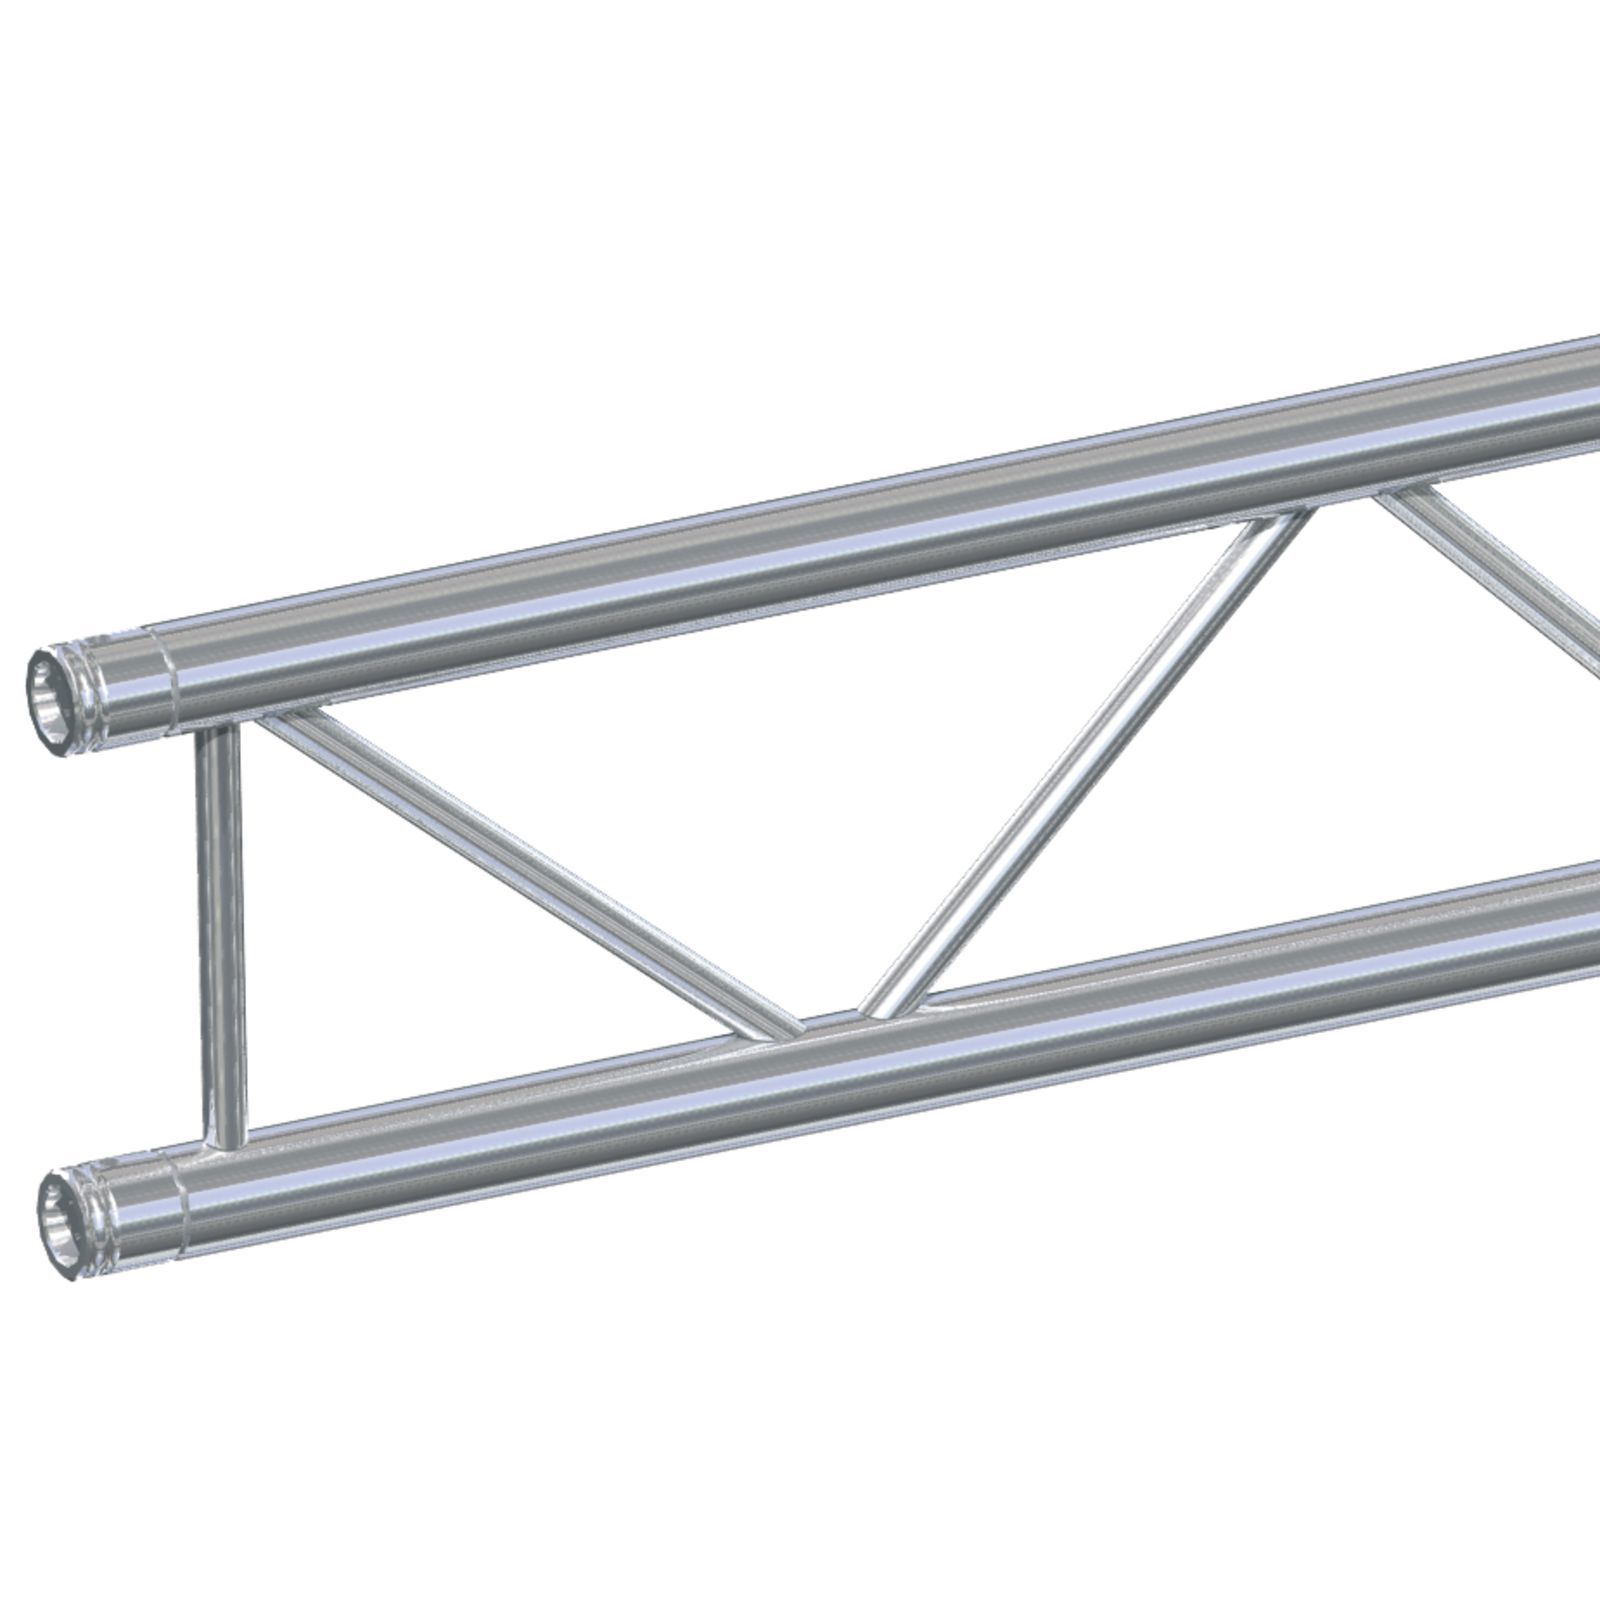 Global Truss F32 200cm Truss 2-Point, TÜV-Certified Produktbillede